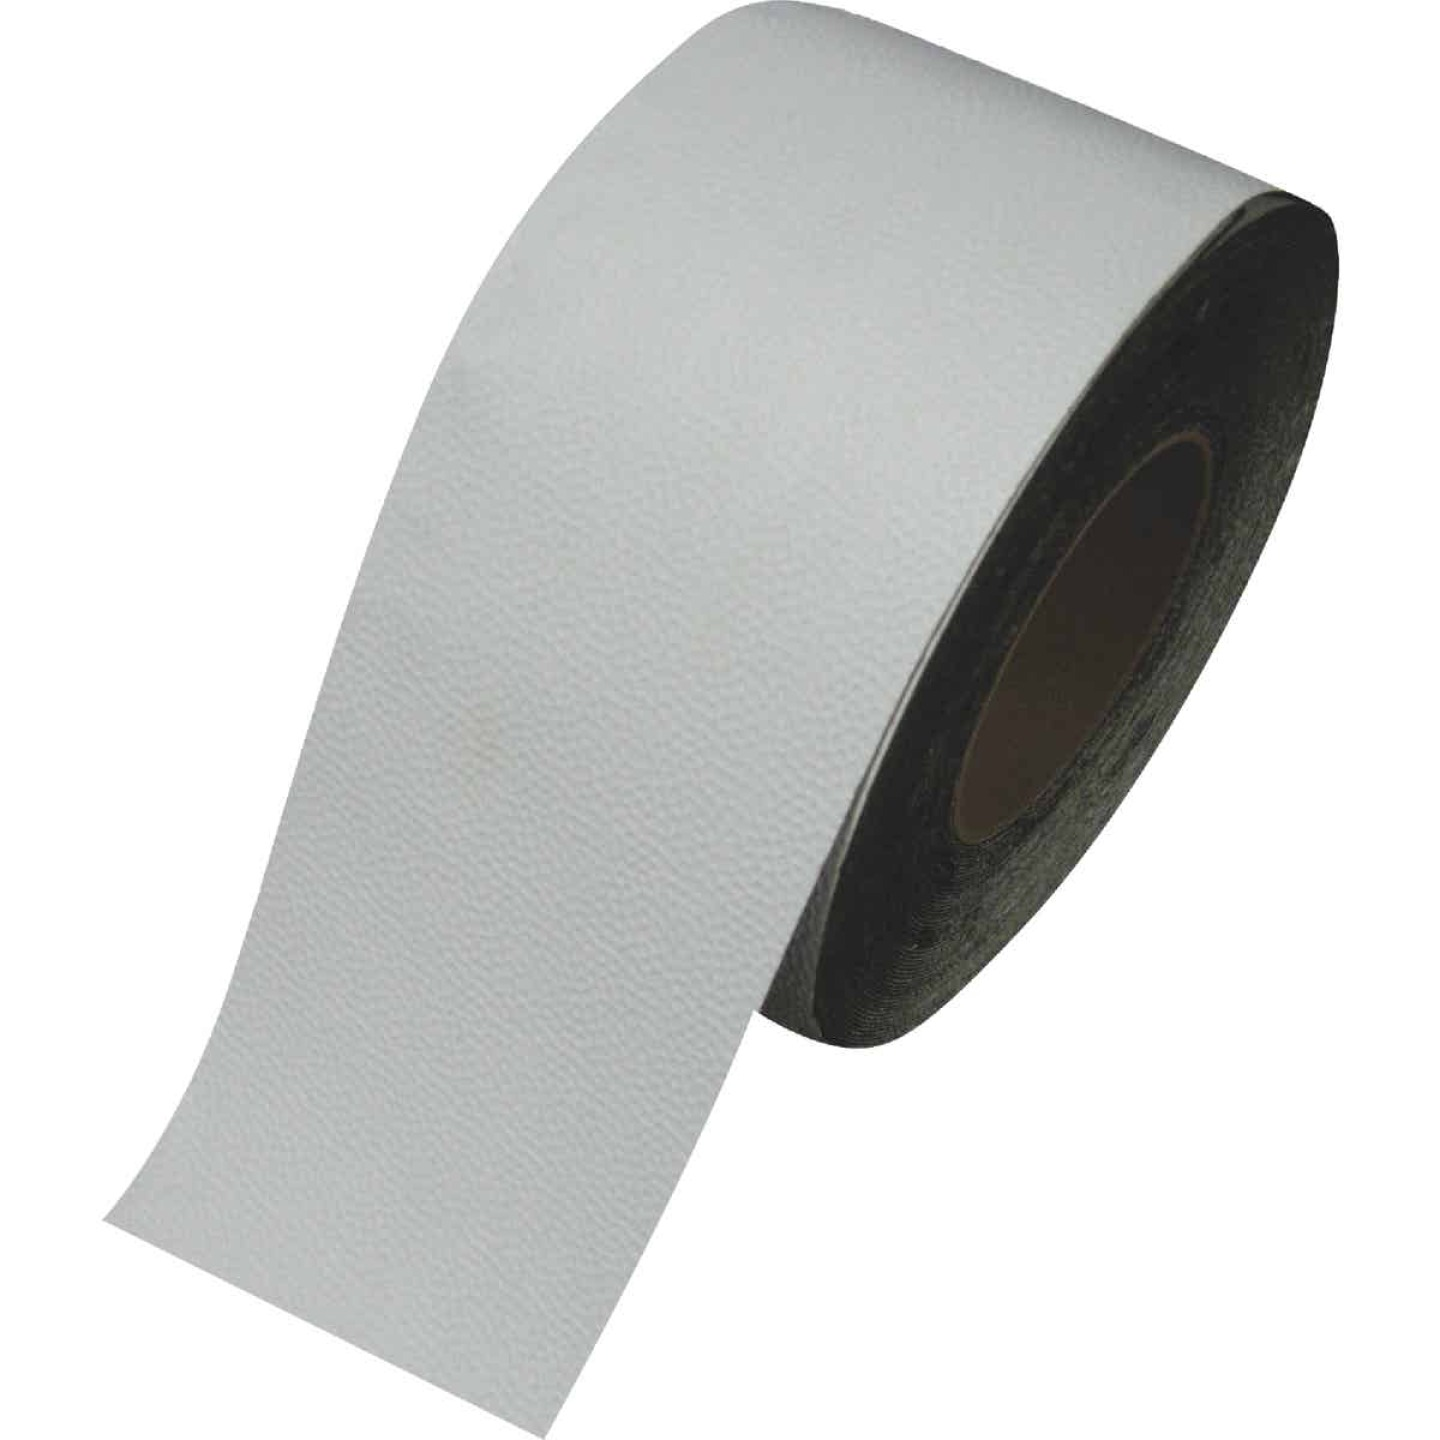 MFM WindowWrap W3 Tape 6 In. X 75 Ft. Universal Self-Adhering Window Tape Image 2